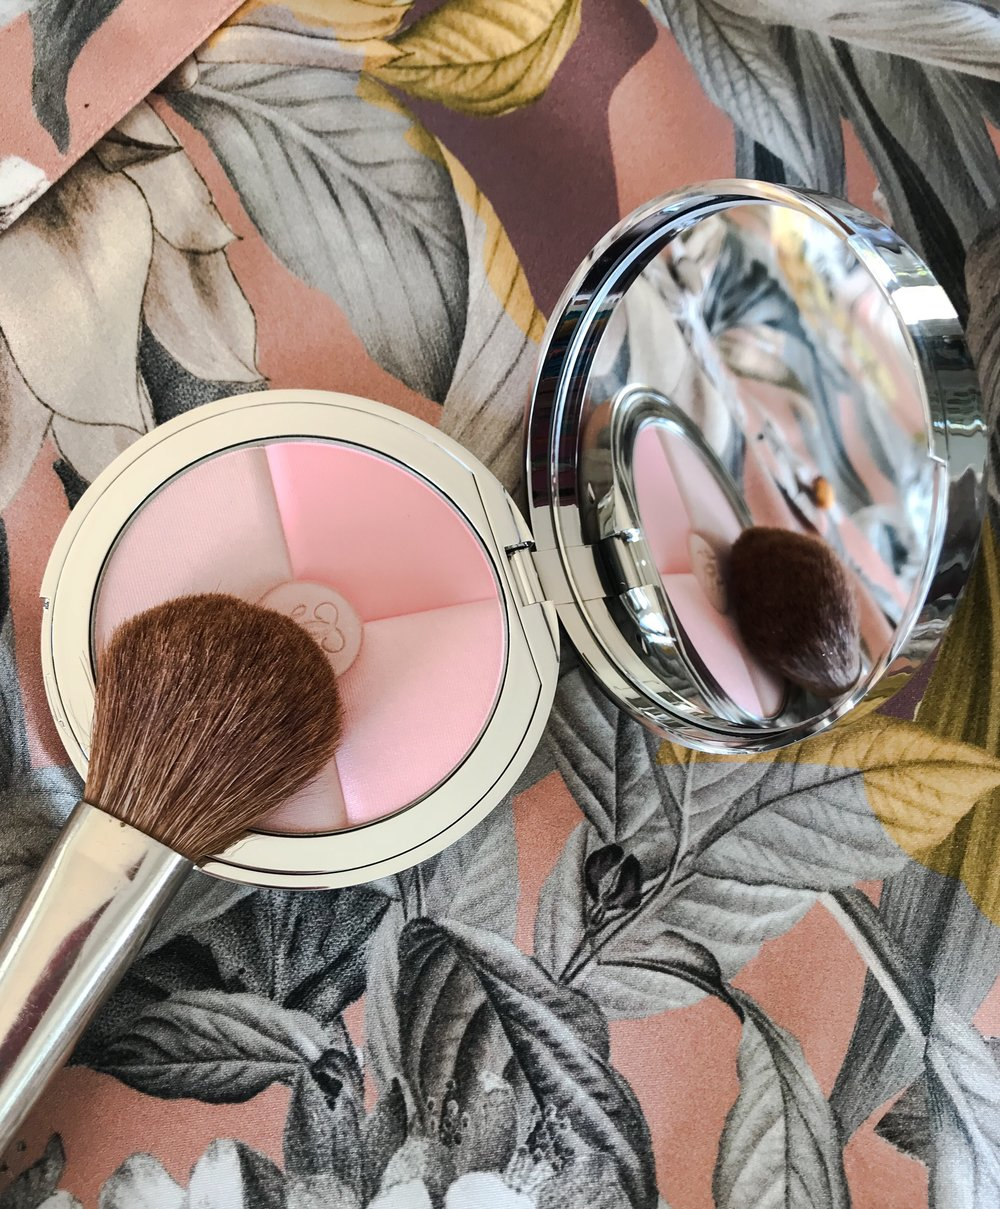 The tip of a makeup brush resting on an open blush case that holds several shades of pink sitting on a leafy grey and peach coloured background